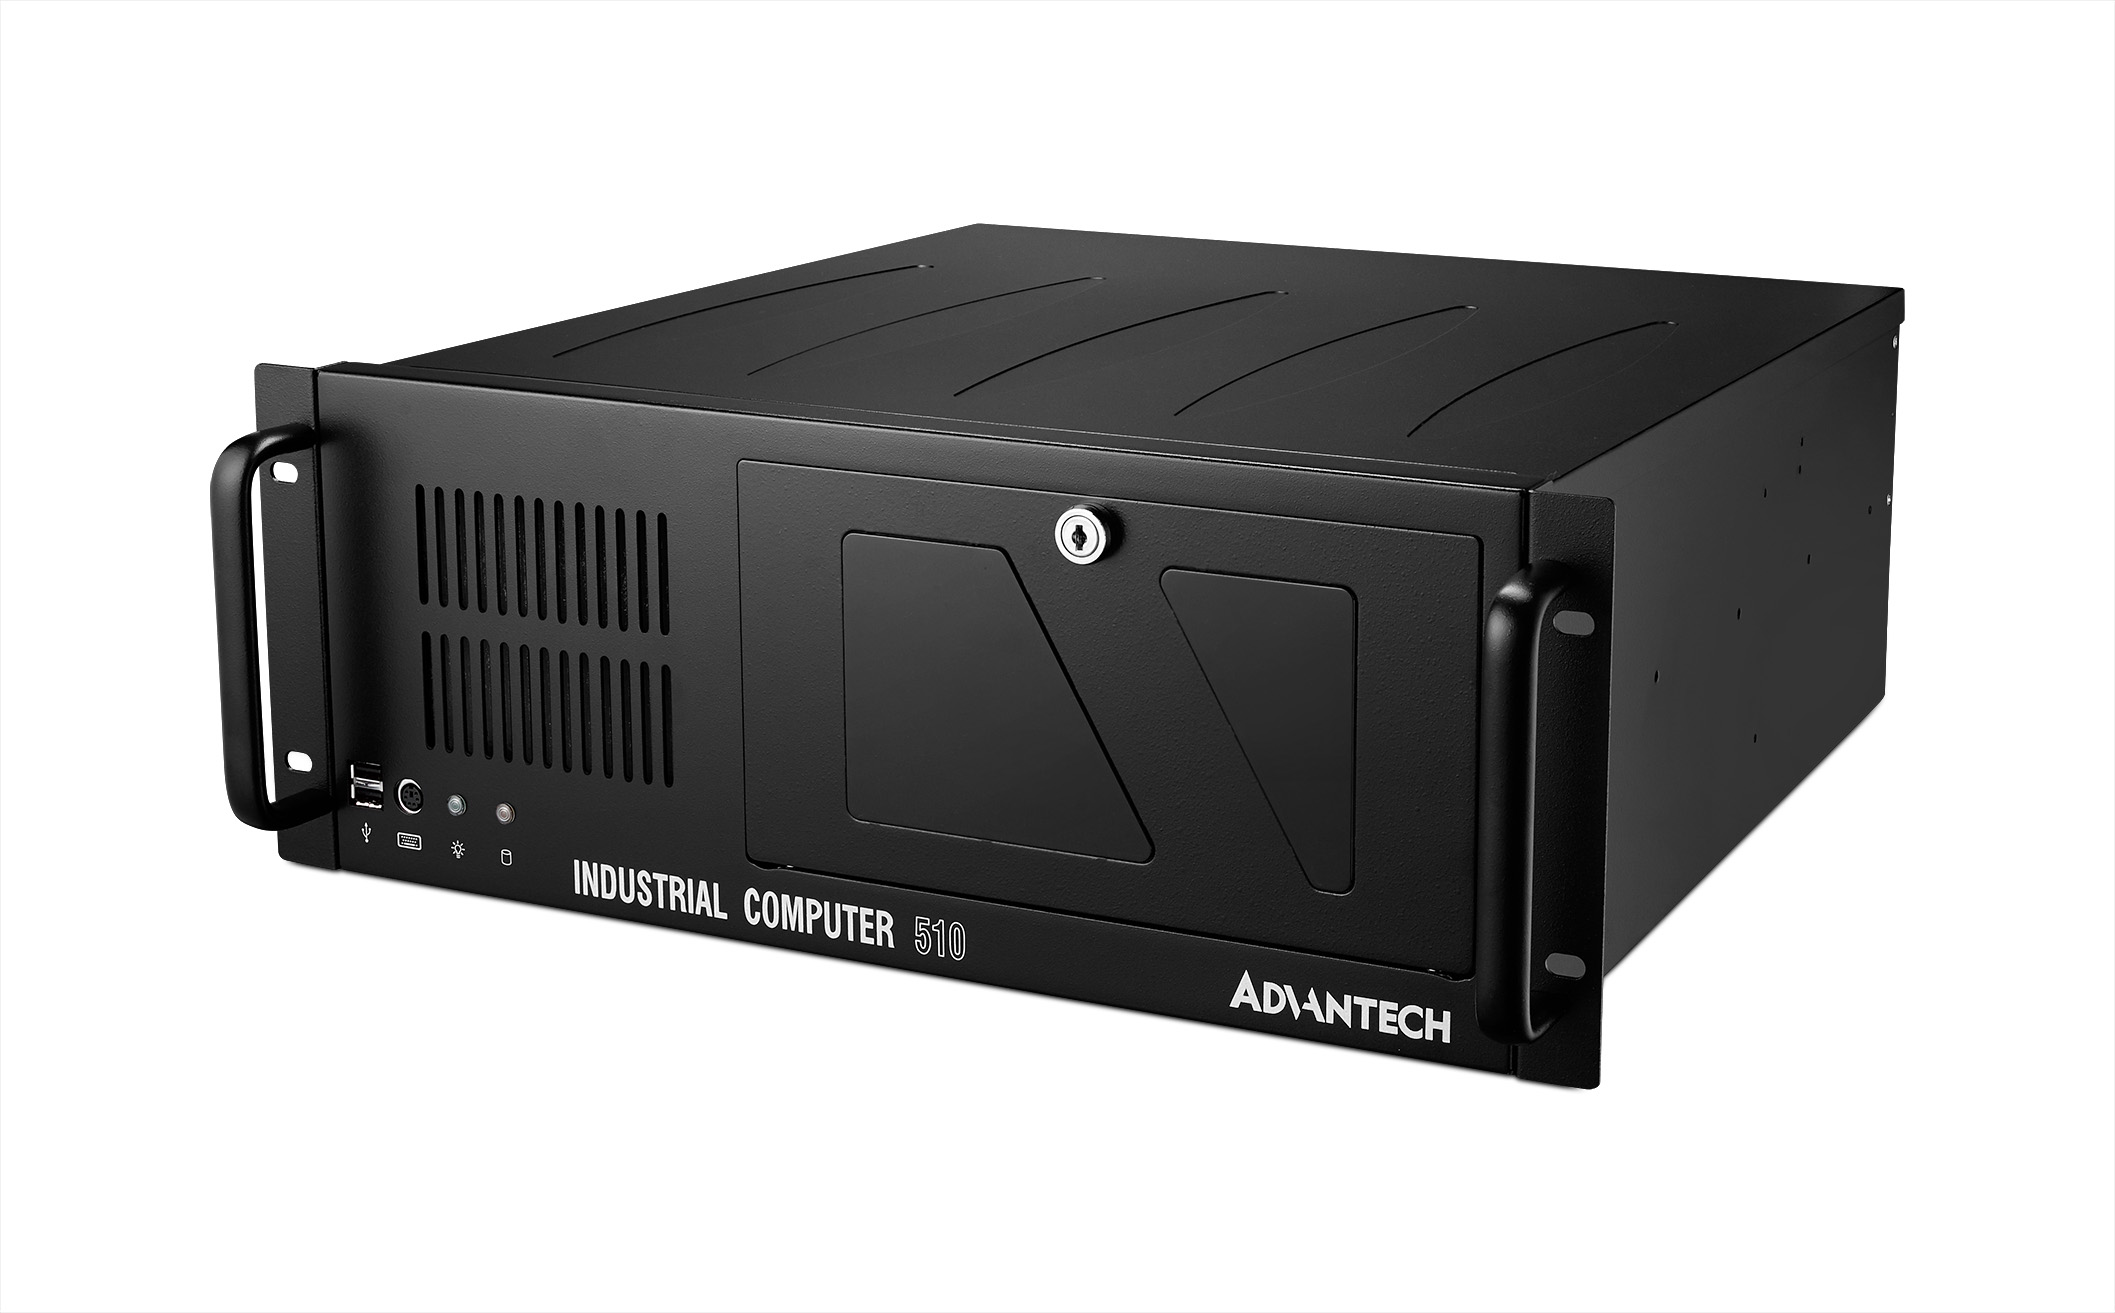 4U Rackmount System With 300W PSU/Intel<sup>®</sup> Core™ i5-6500 3.2GHz/8GB DDR4/500GB HDD/24X DVD+/-RW /7 expansion slots